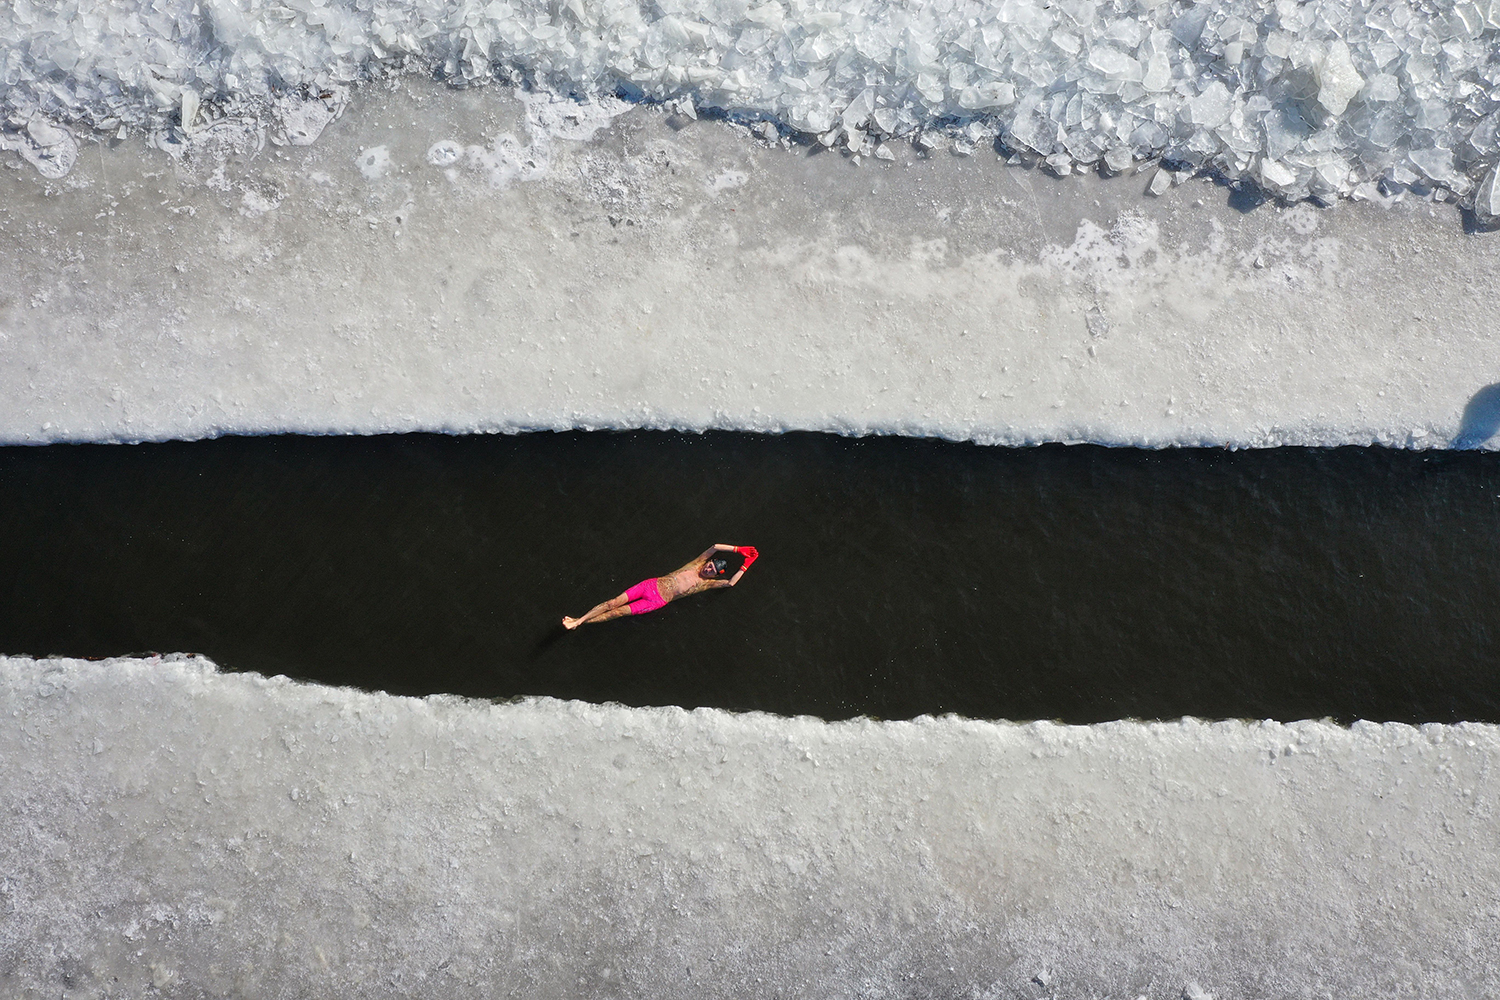 A man swims in a pool that was cut into a frozen lake in Shenyang, China, on Jan. 7. STR/AFP via Getty Images